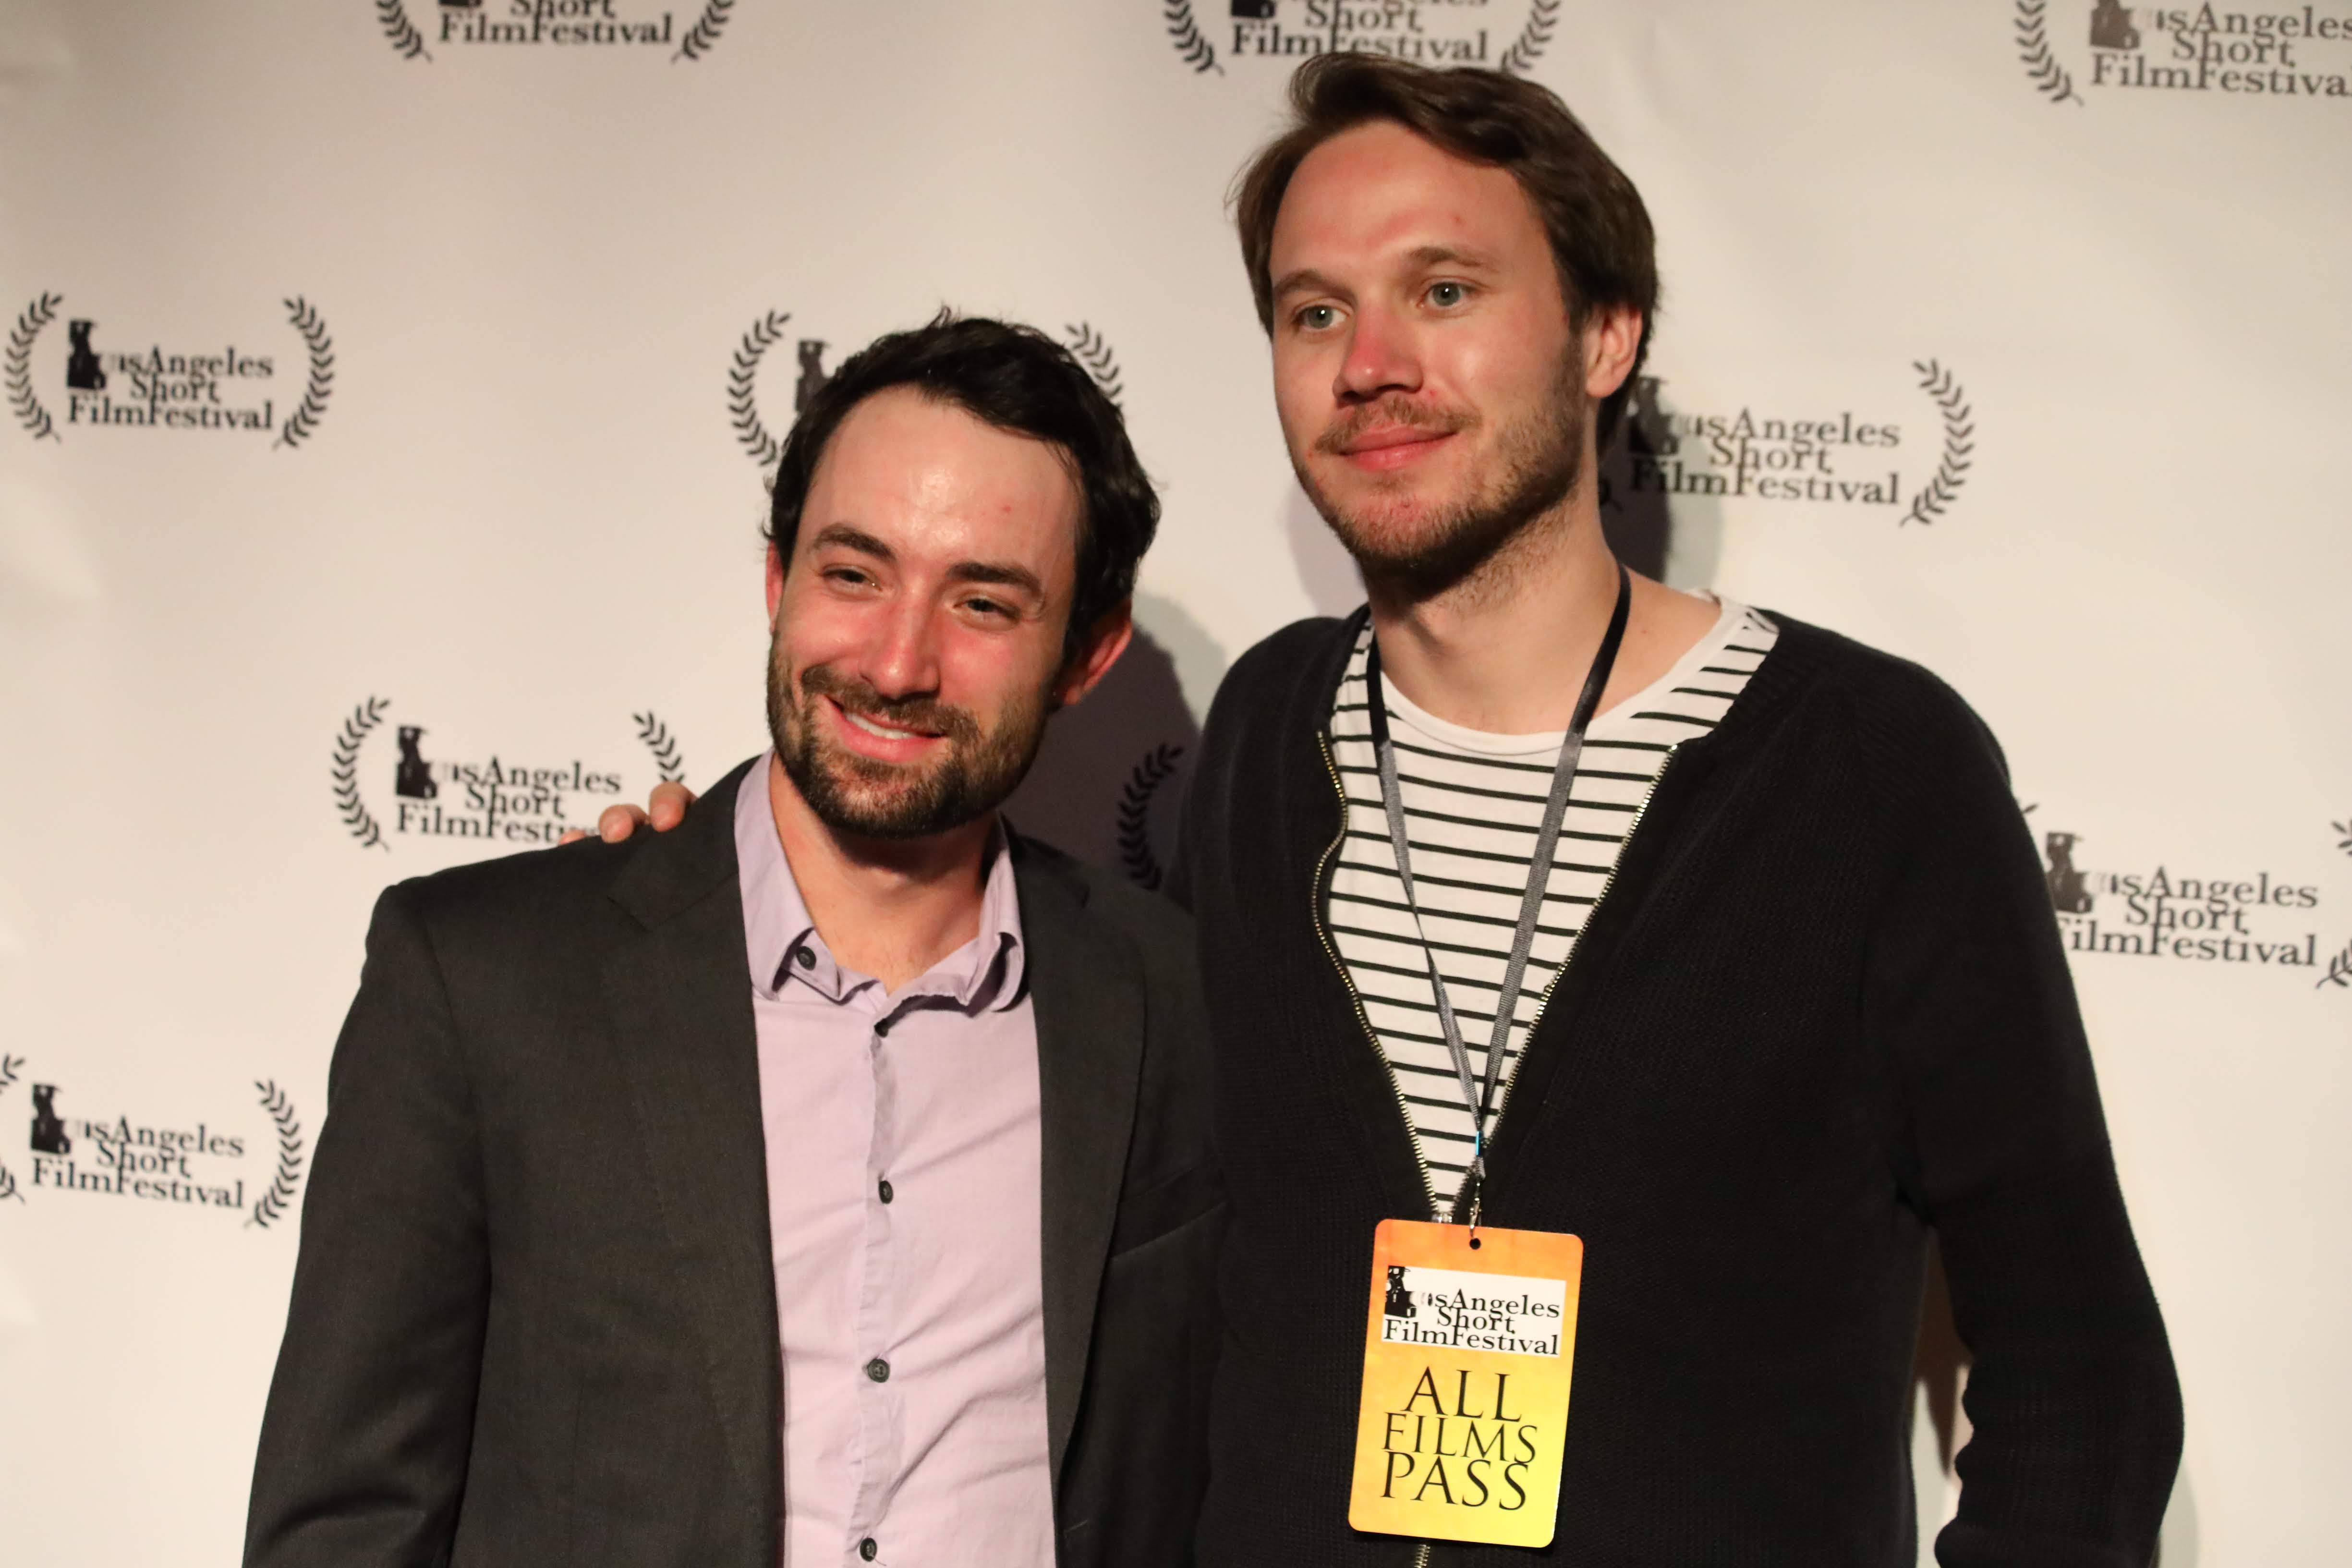 Composer Matt Donner and Director Johan Bodell